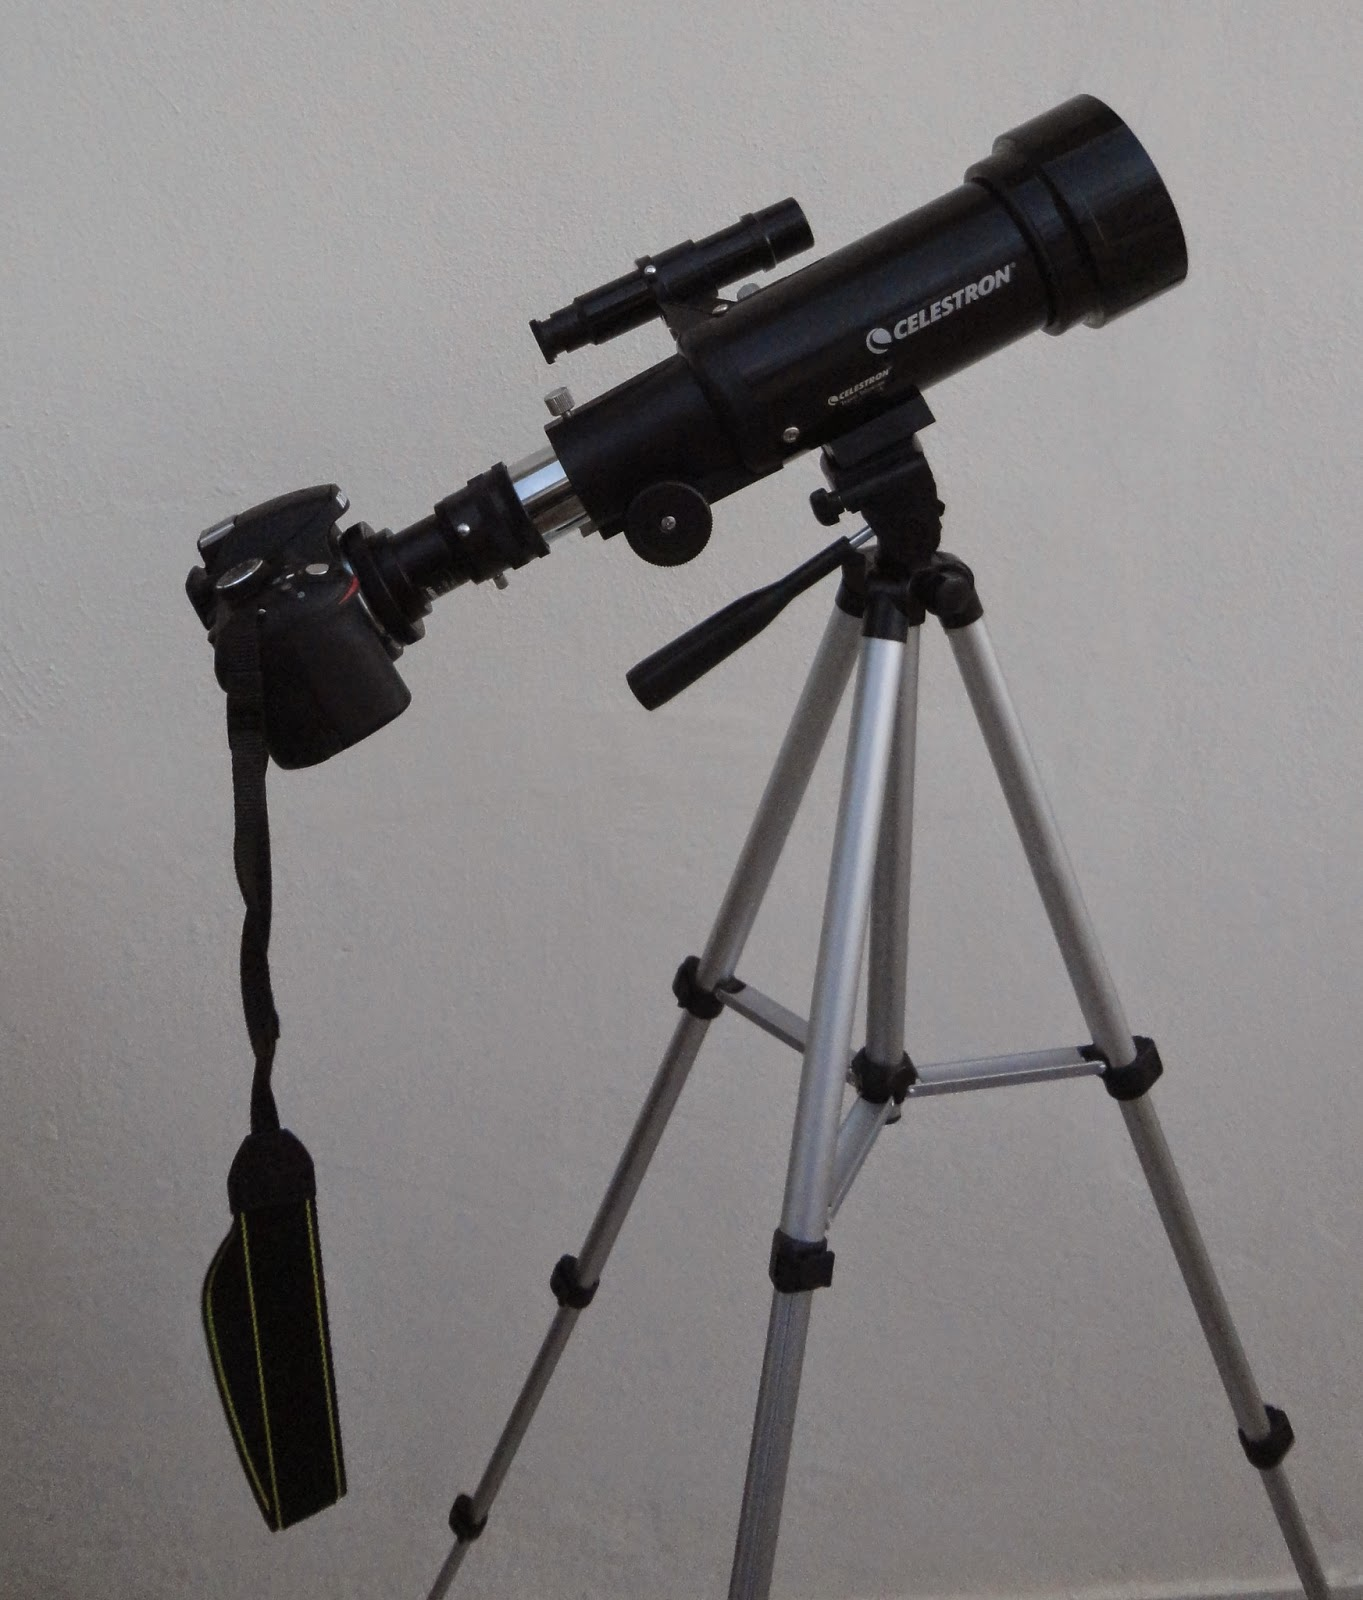 Nikon D3200 attached to the Celestron travelscope 70 using a T2 Mount.